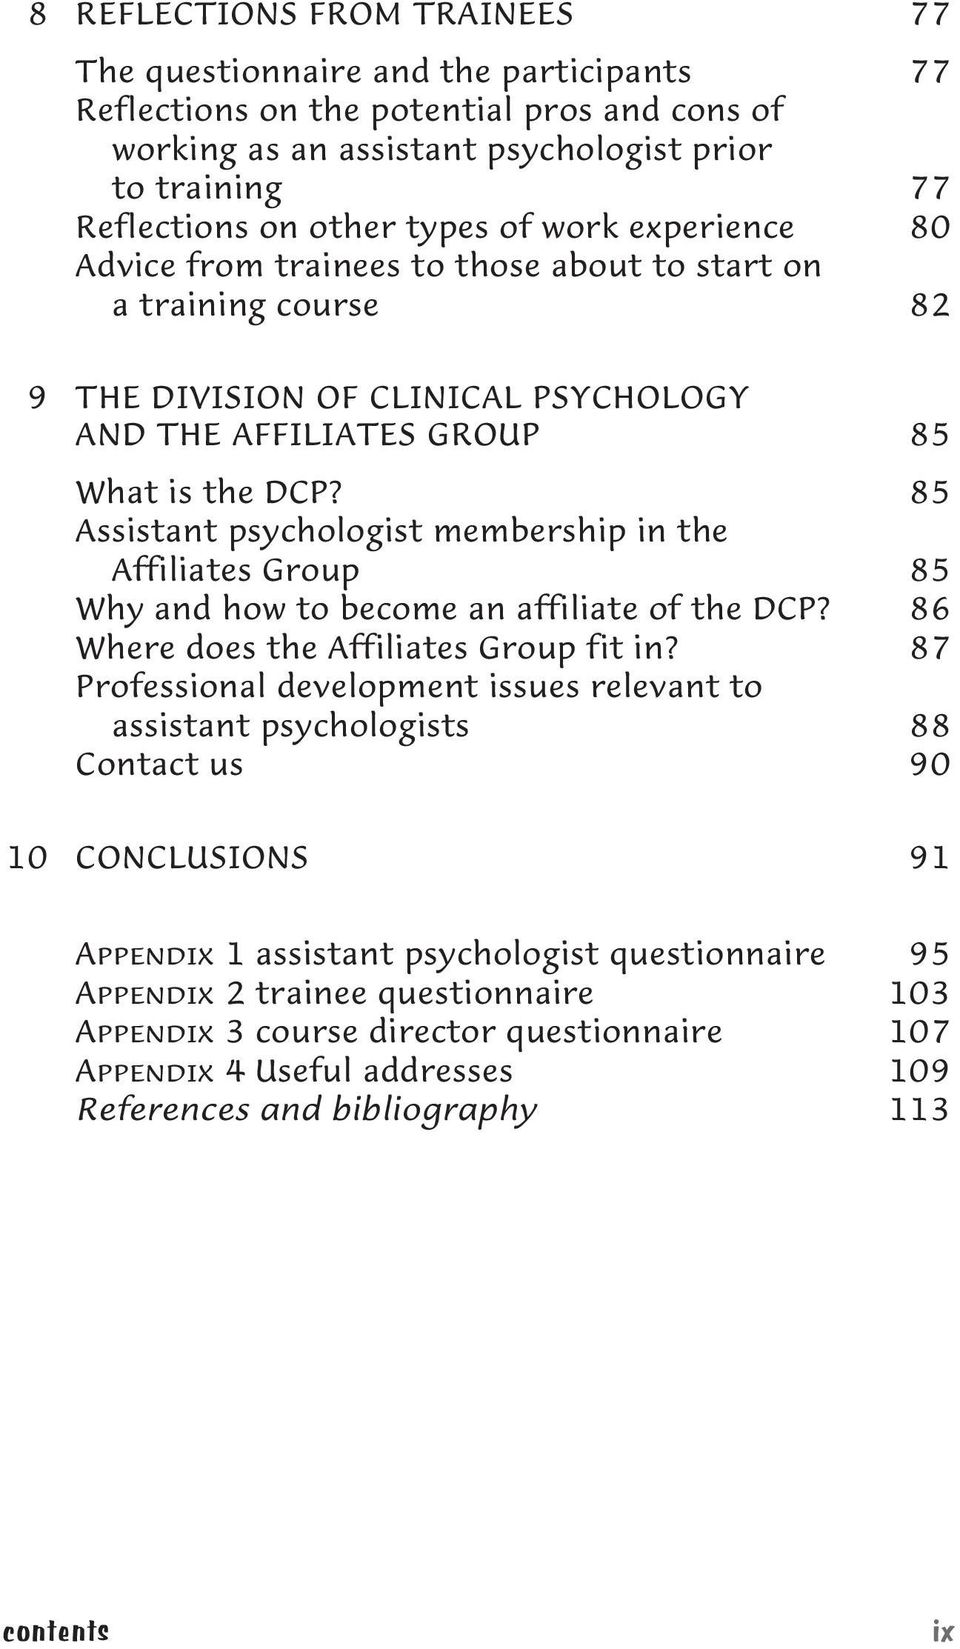 85 Assistant psychologist membership in the Affiliates Group 85 Why and how to become an affiliate of the DCP? 86 Where does the Affiliates Group fit in?